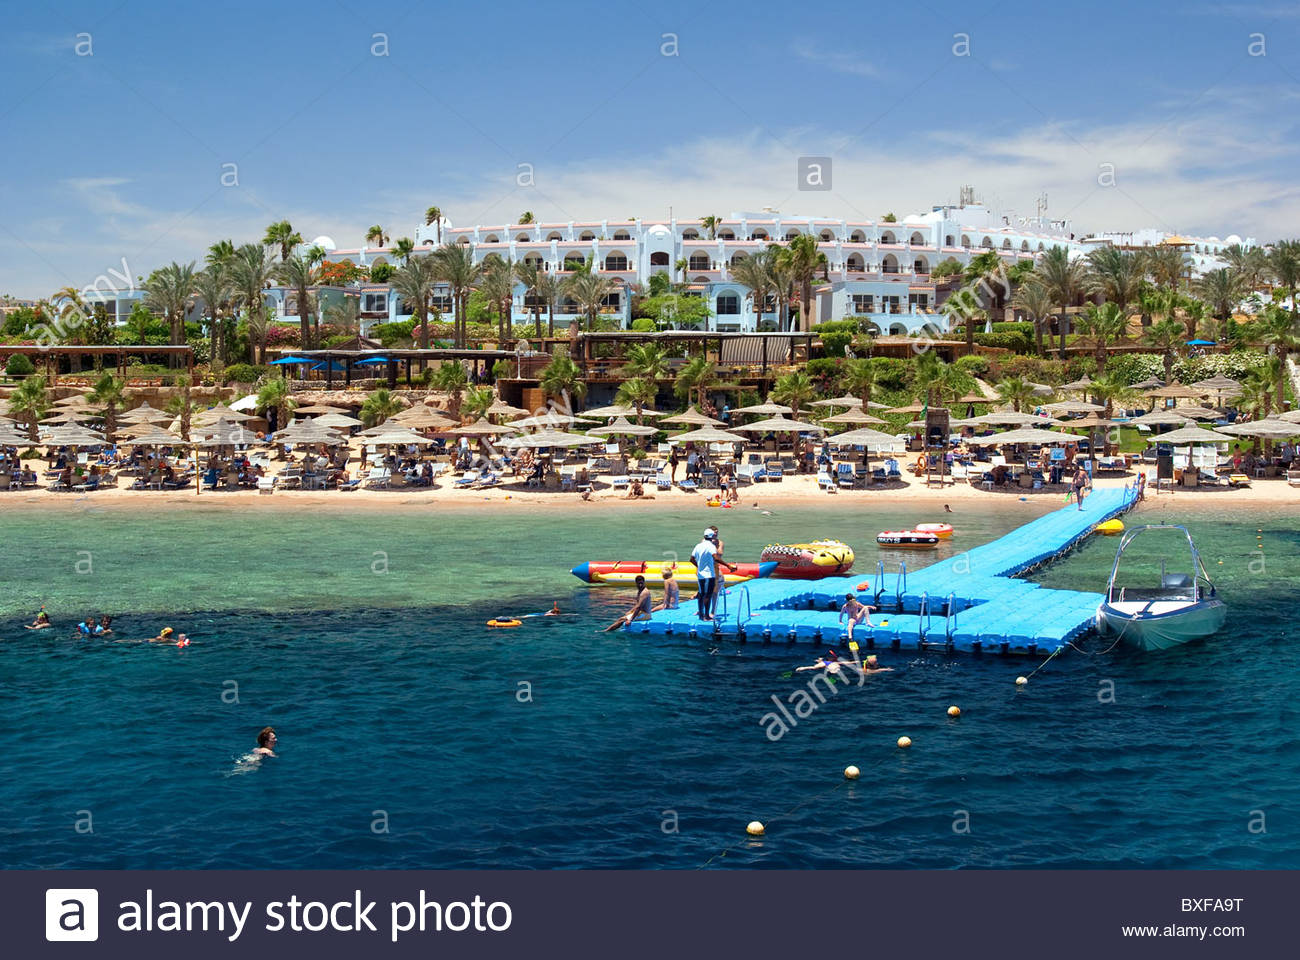 Tourist resort in Sharm el Sheikh - Egypt - Red Sea - Stock Image